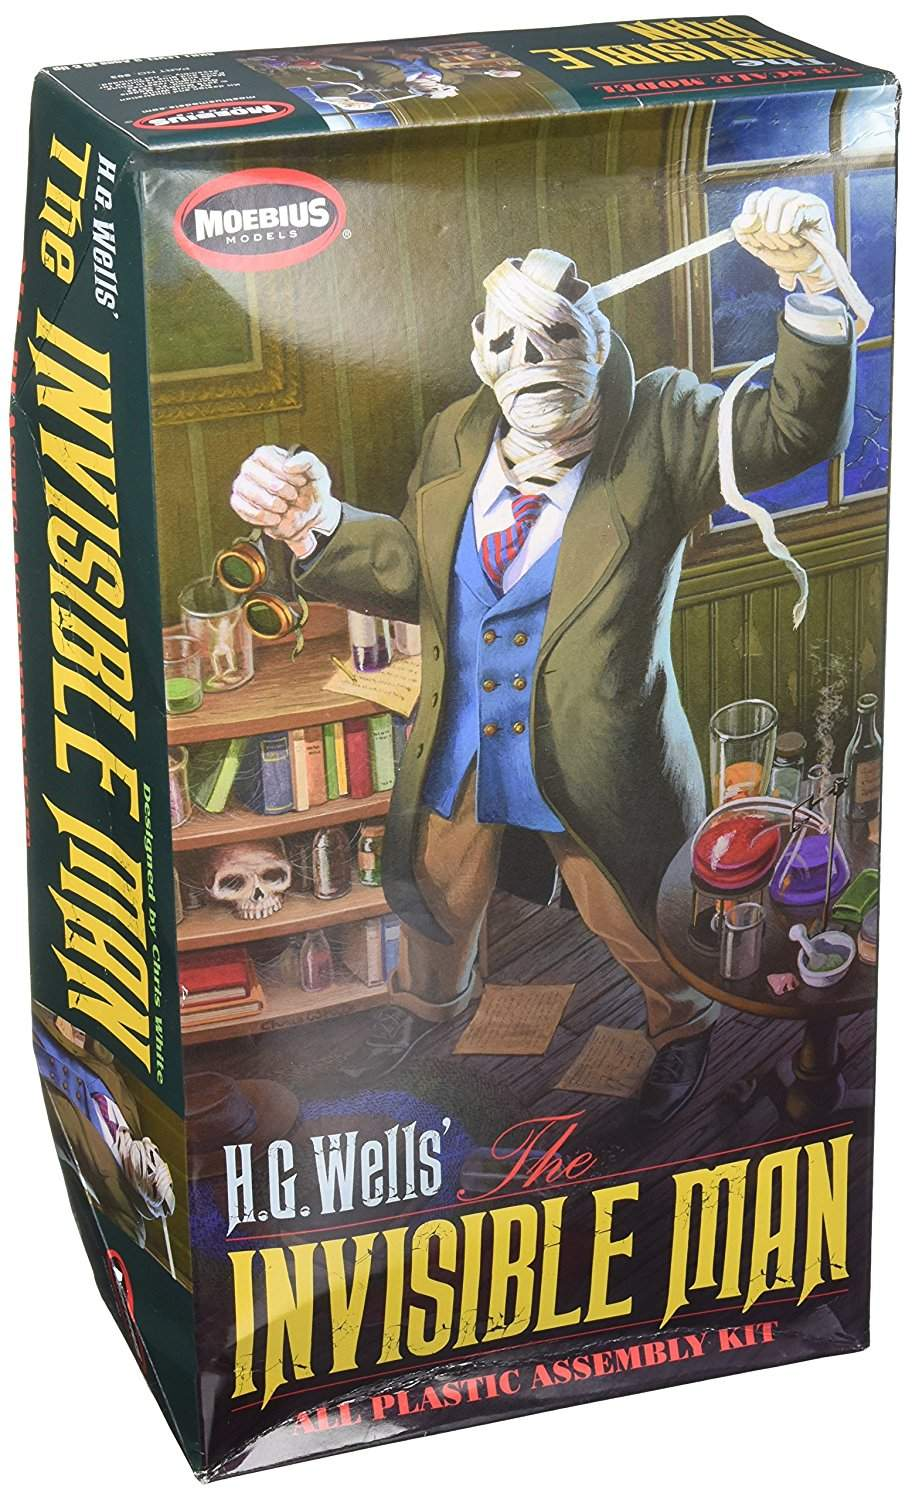 HG Wells Invisible Man Plastic Assembly Kit (1/8 Scale)